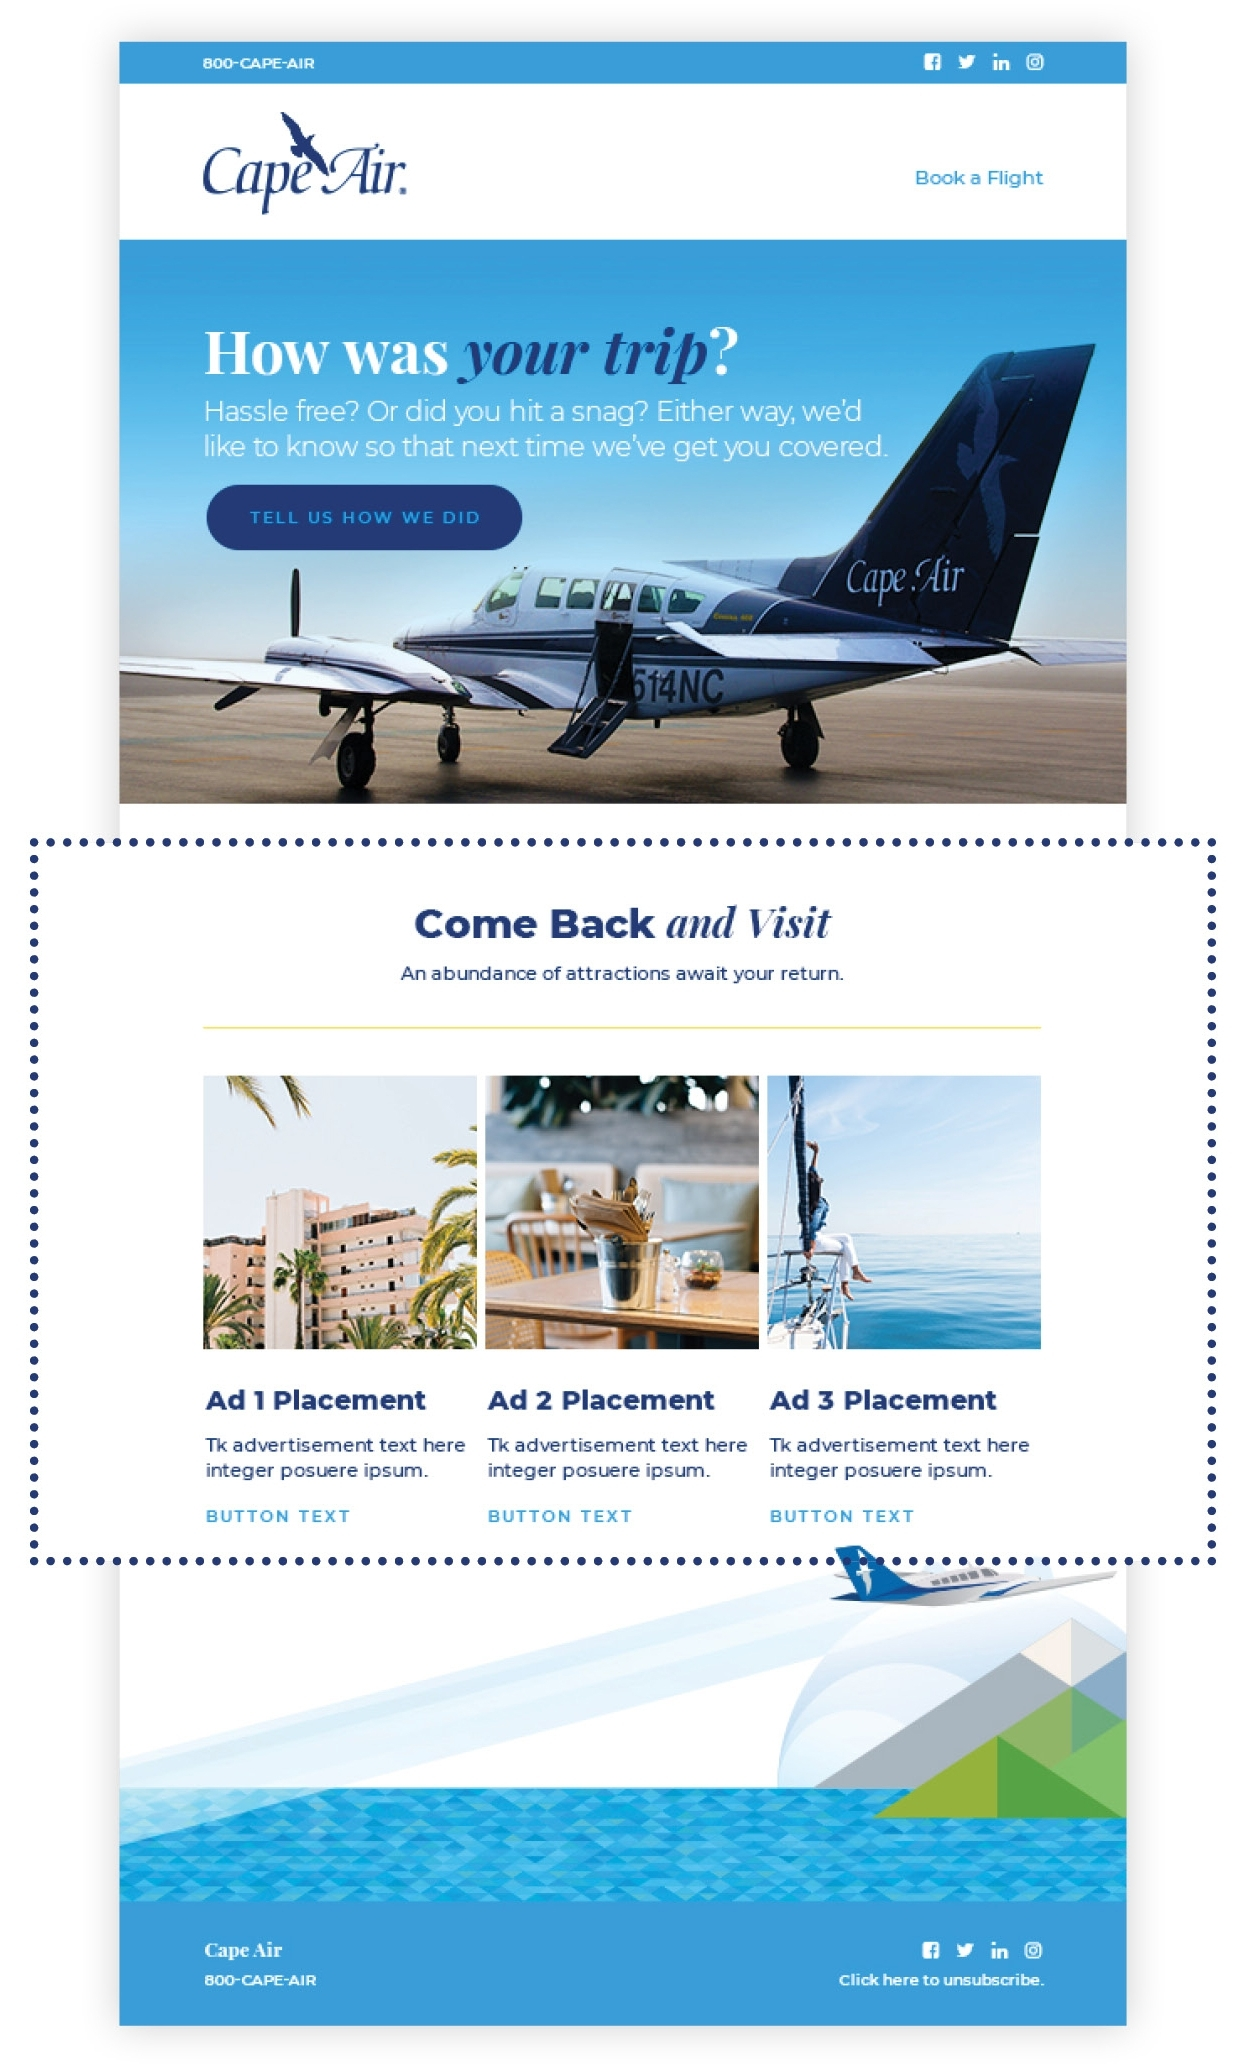 cape-air-ad-spec-postflight-preflight-email-graphic_02.jpg